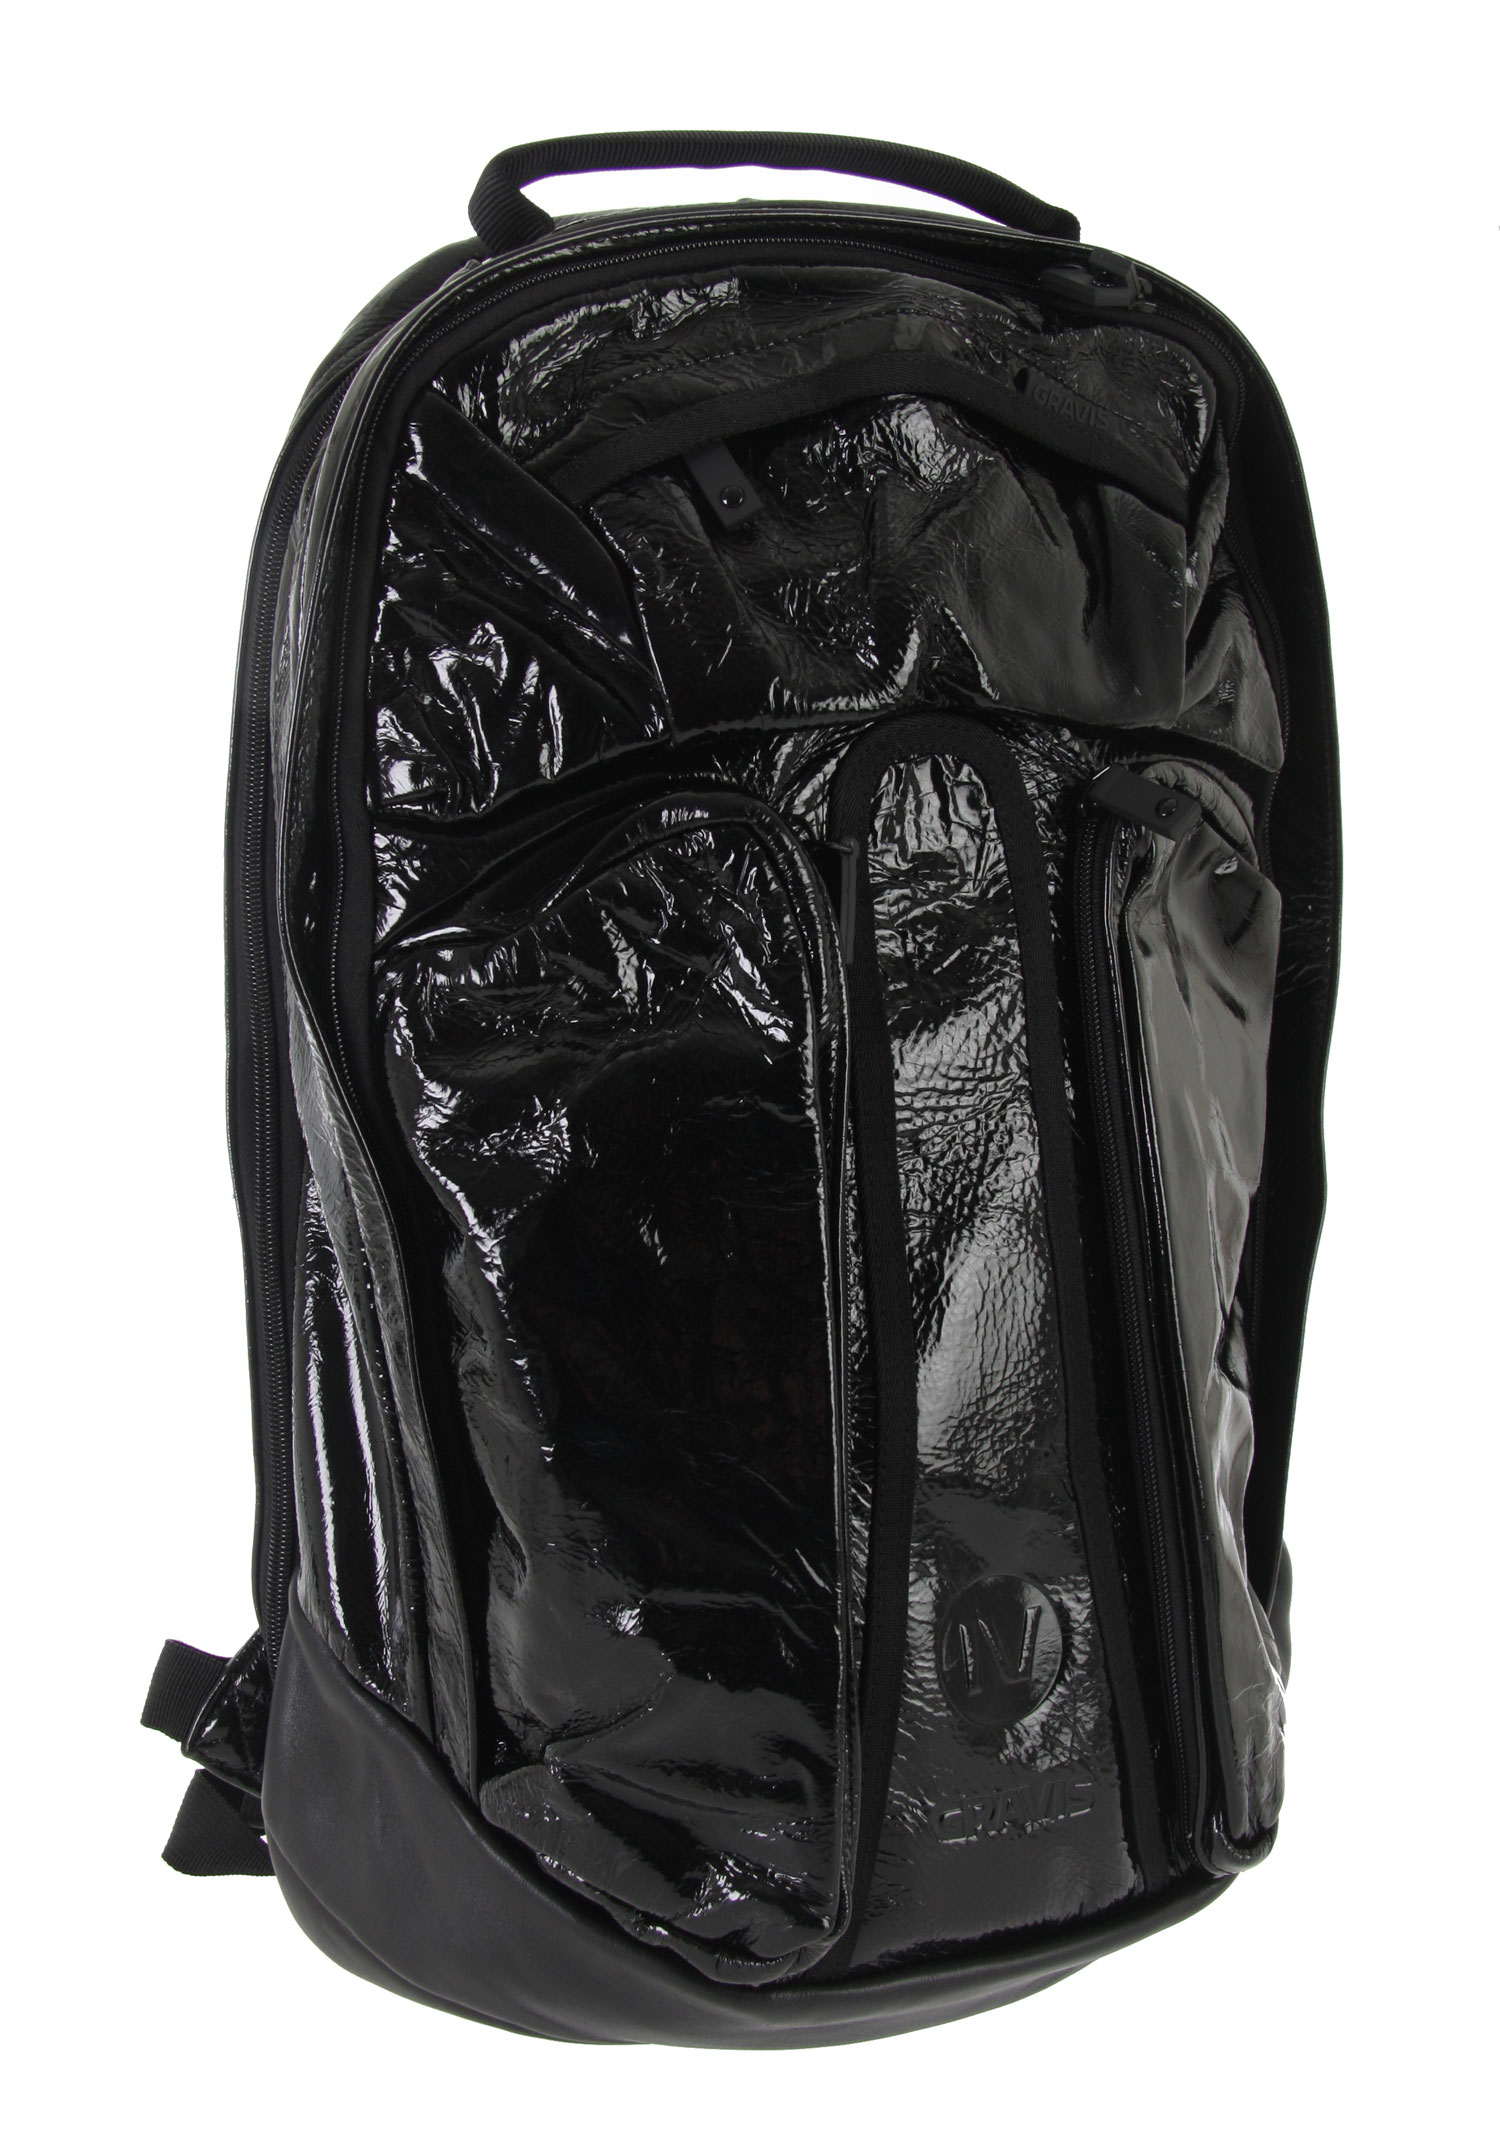 Entertainment Get the ultimate backpack that's both stylish and comfortable.  The Gravis Metro Black Box Backpack features hidden backstraps.  This bag features a simple design, showcasing outer pockets and a main compartment.  With added padding on the shoulder straps, carry it around with ultra comfort.  This is a must-have bag for great convenient travel.Key Features of the Gravis Metro Black Box Backpack: Hidden back pack straps Side organizer pockets Padded shoulder strap Volume: 25L Dimensions: 56x31x29cm - $79.95